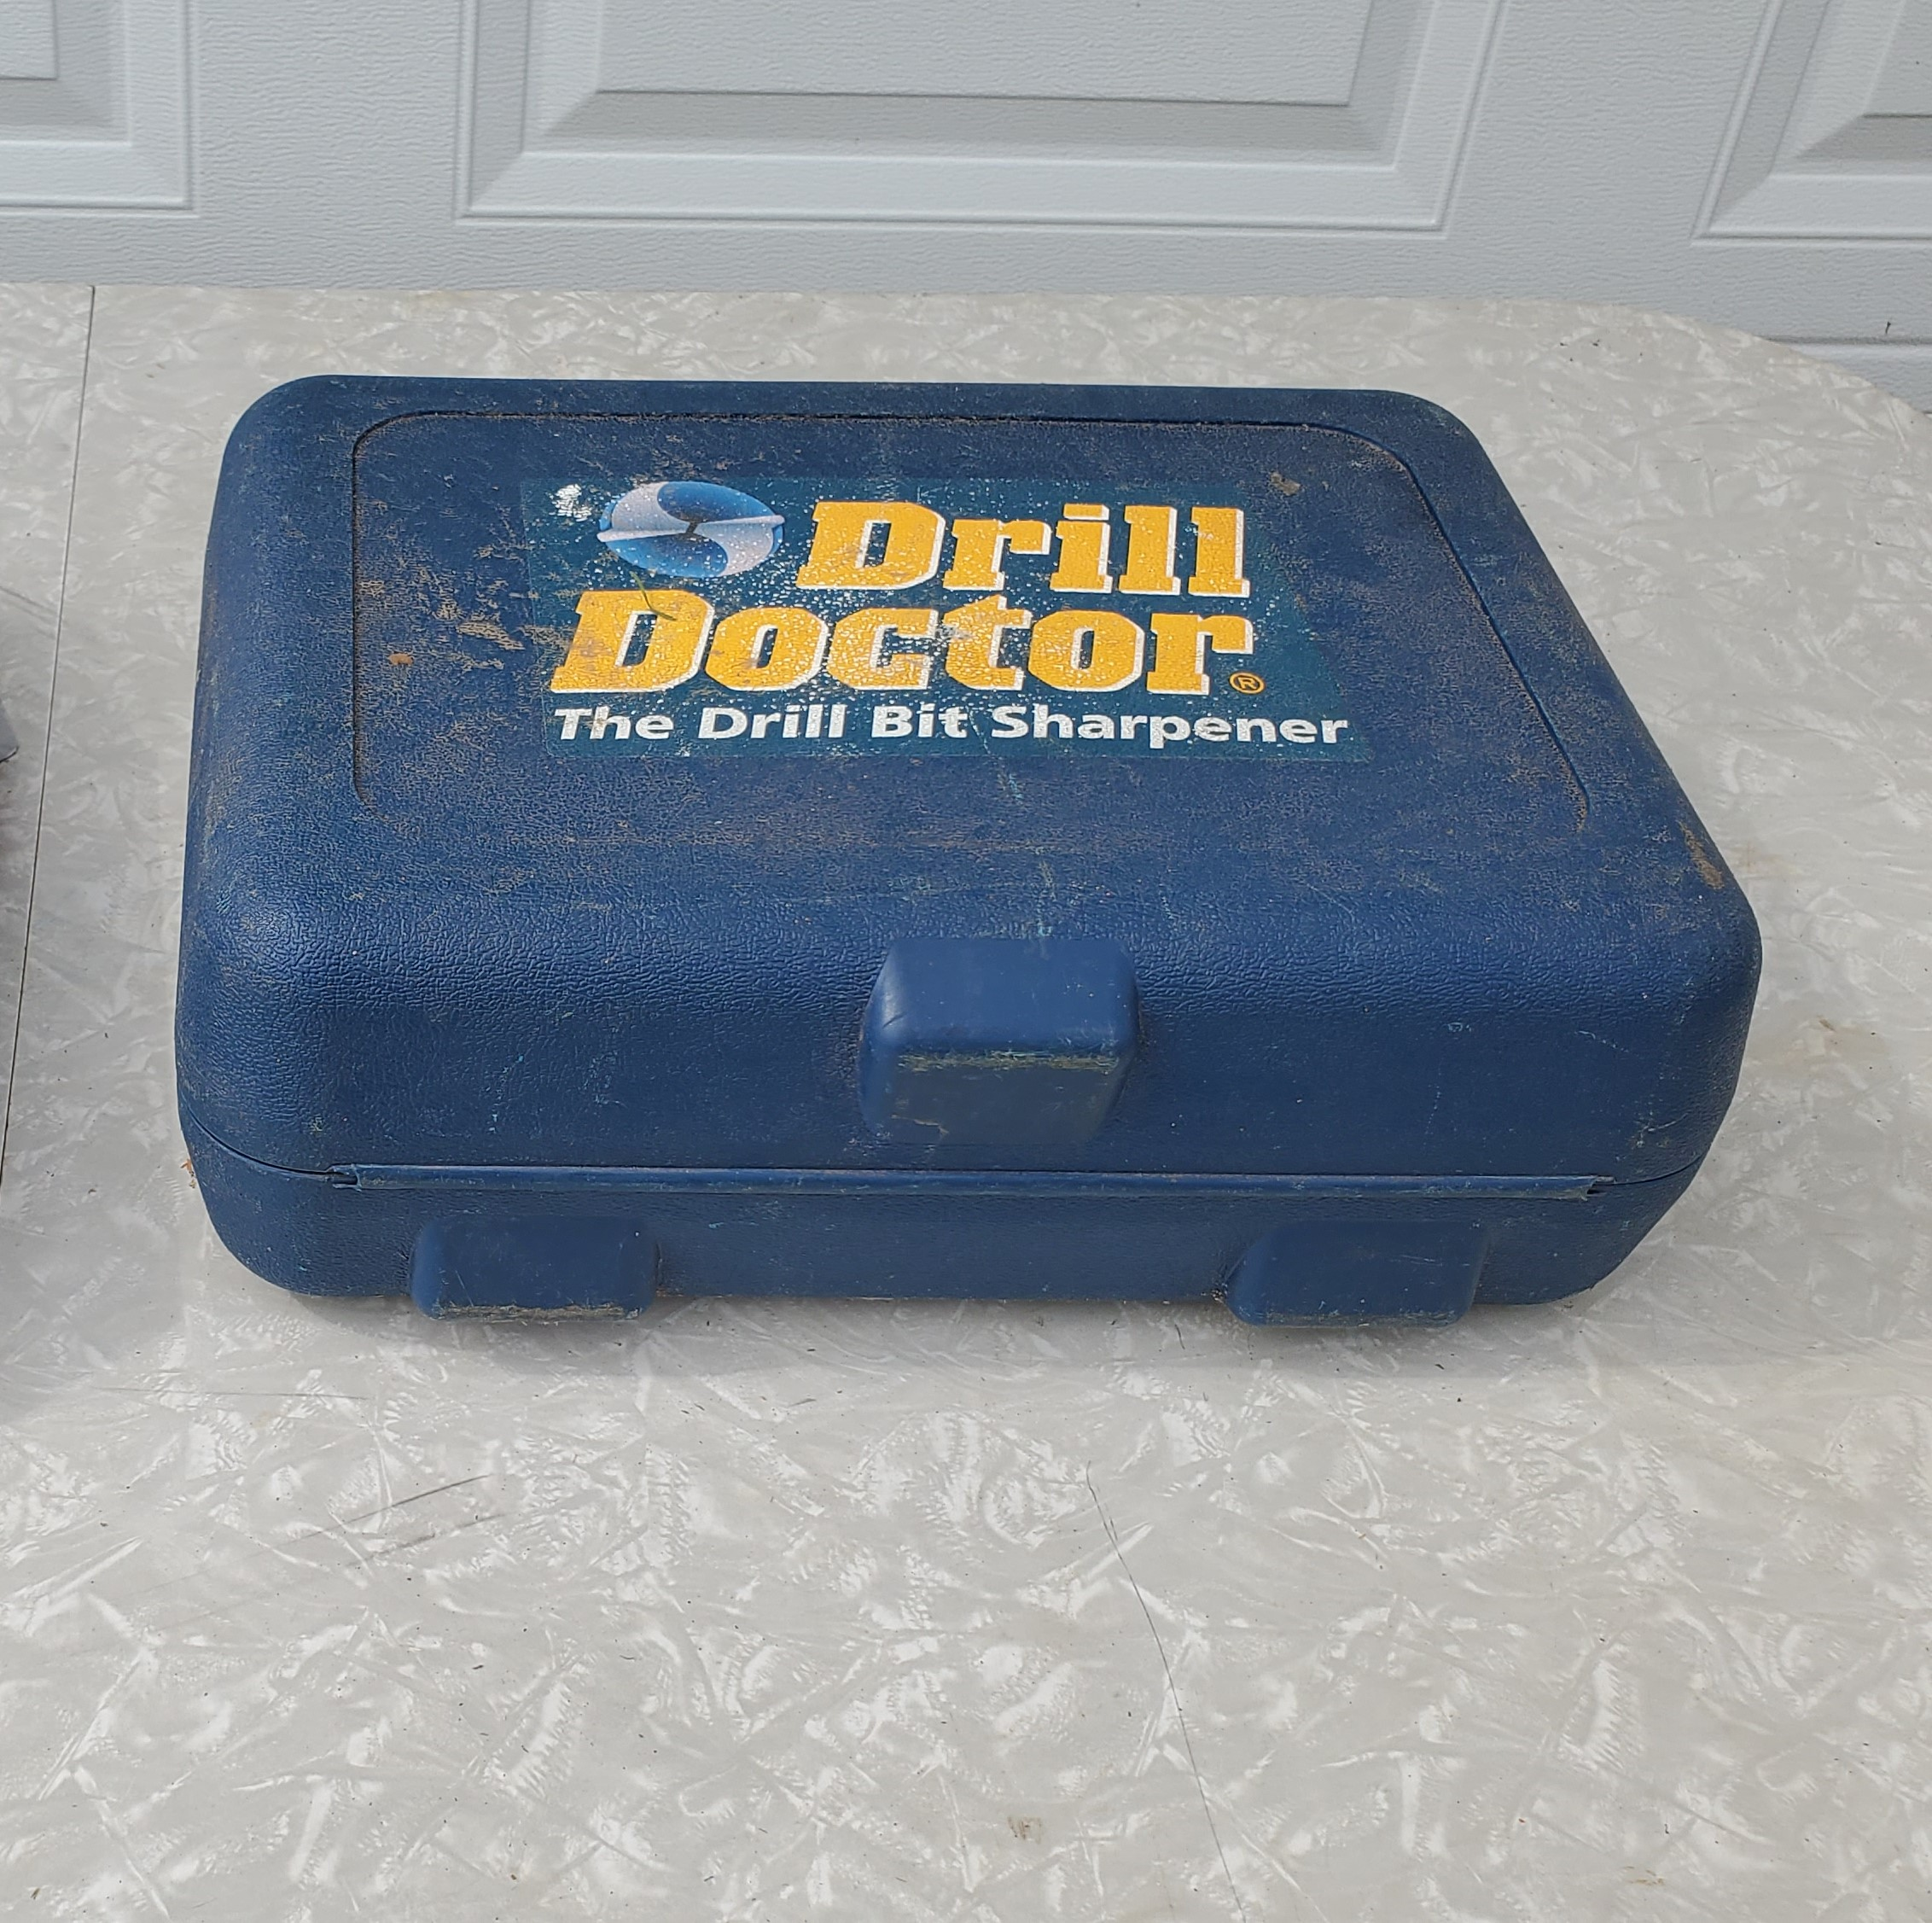 Drill Doctor Drill Bit Sharpener